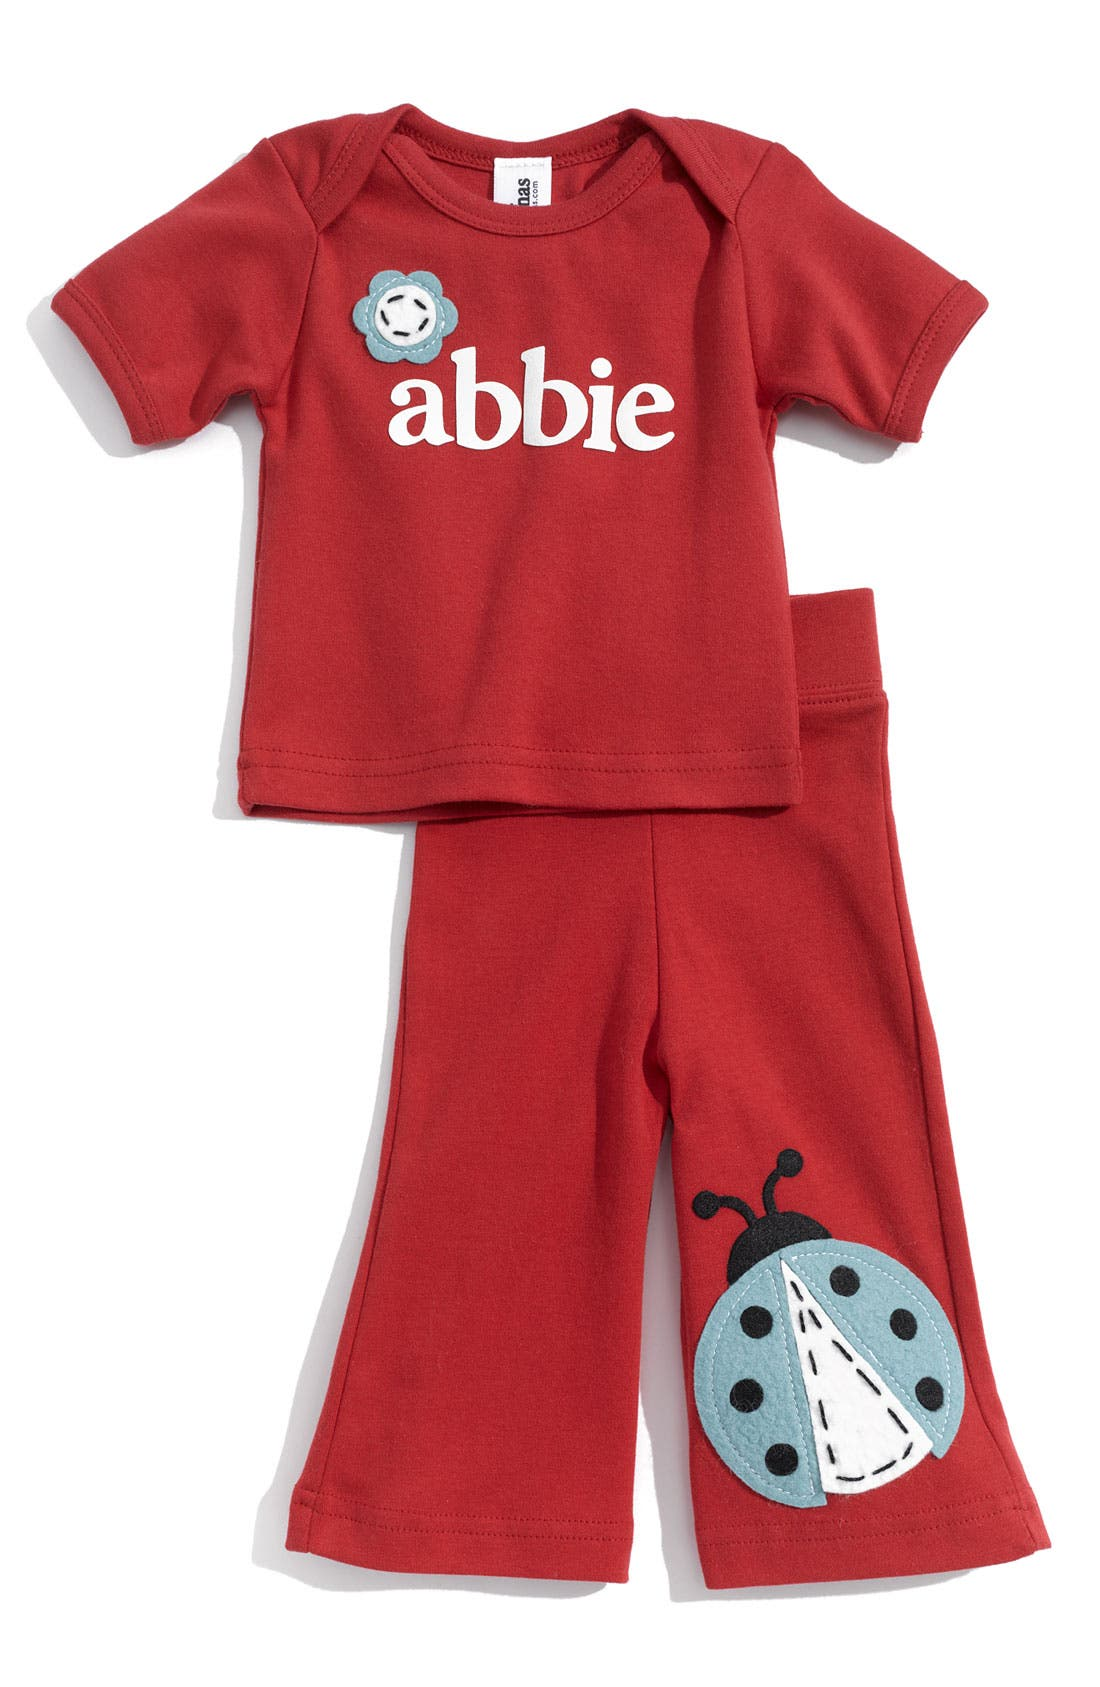 Alternate Image 1 Selected - Two Tinas Personalized Tee & Pants Set (Baby)